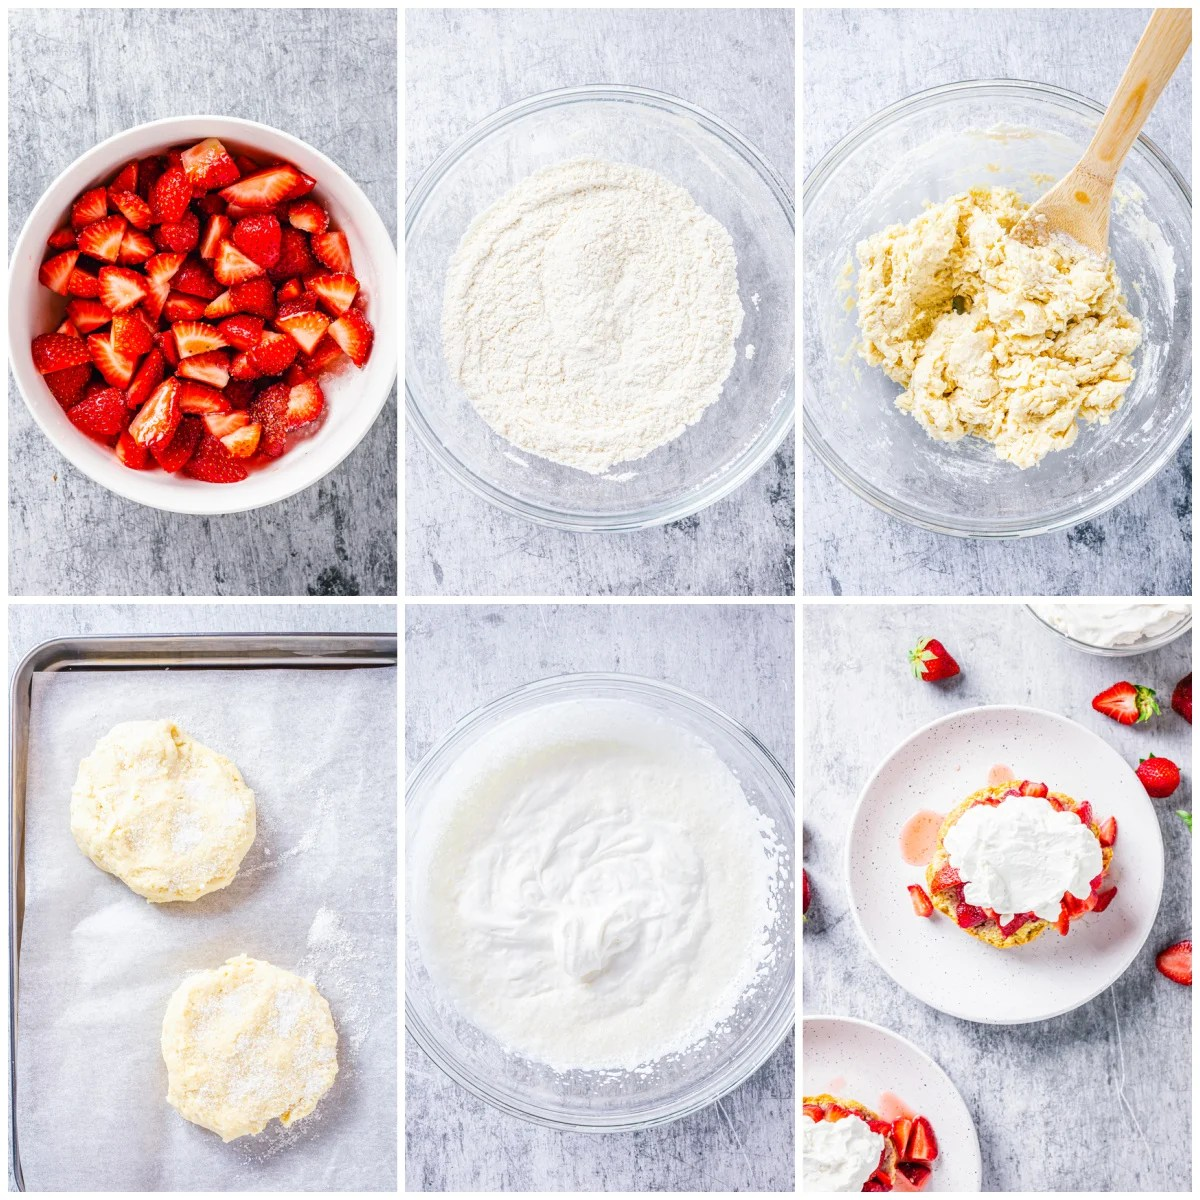 Step by step photos on how to make a Strawberry Shortcake Recipe